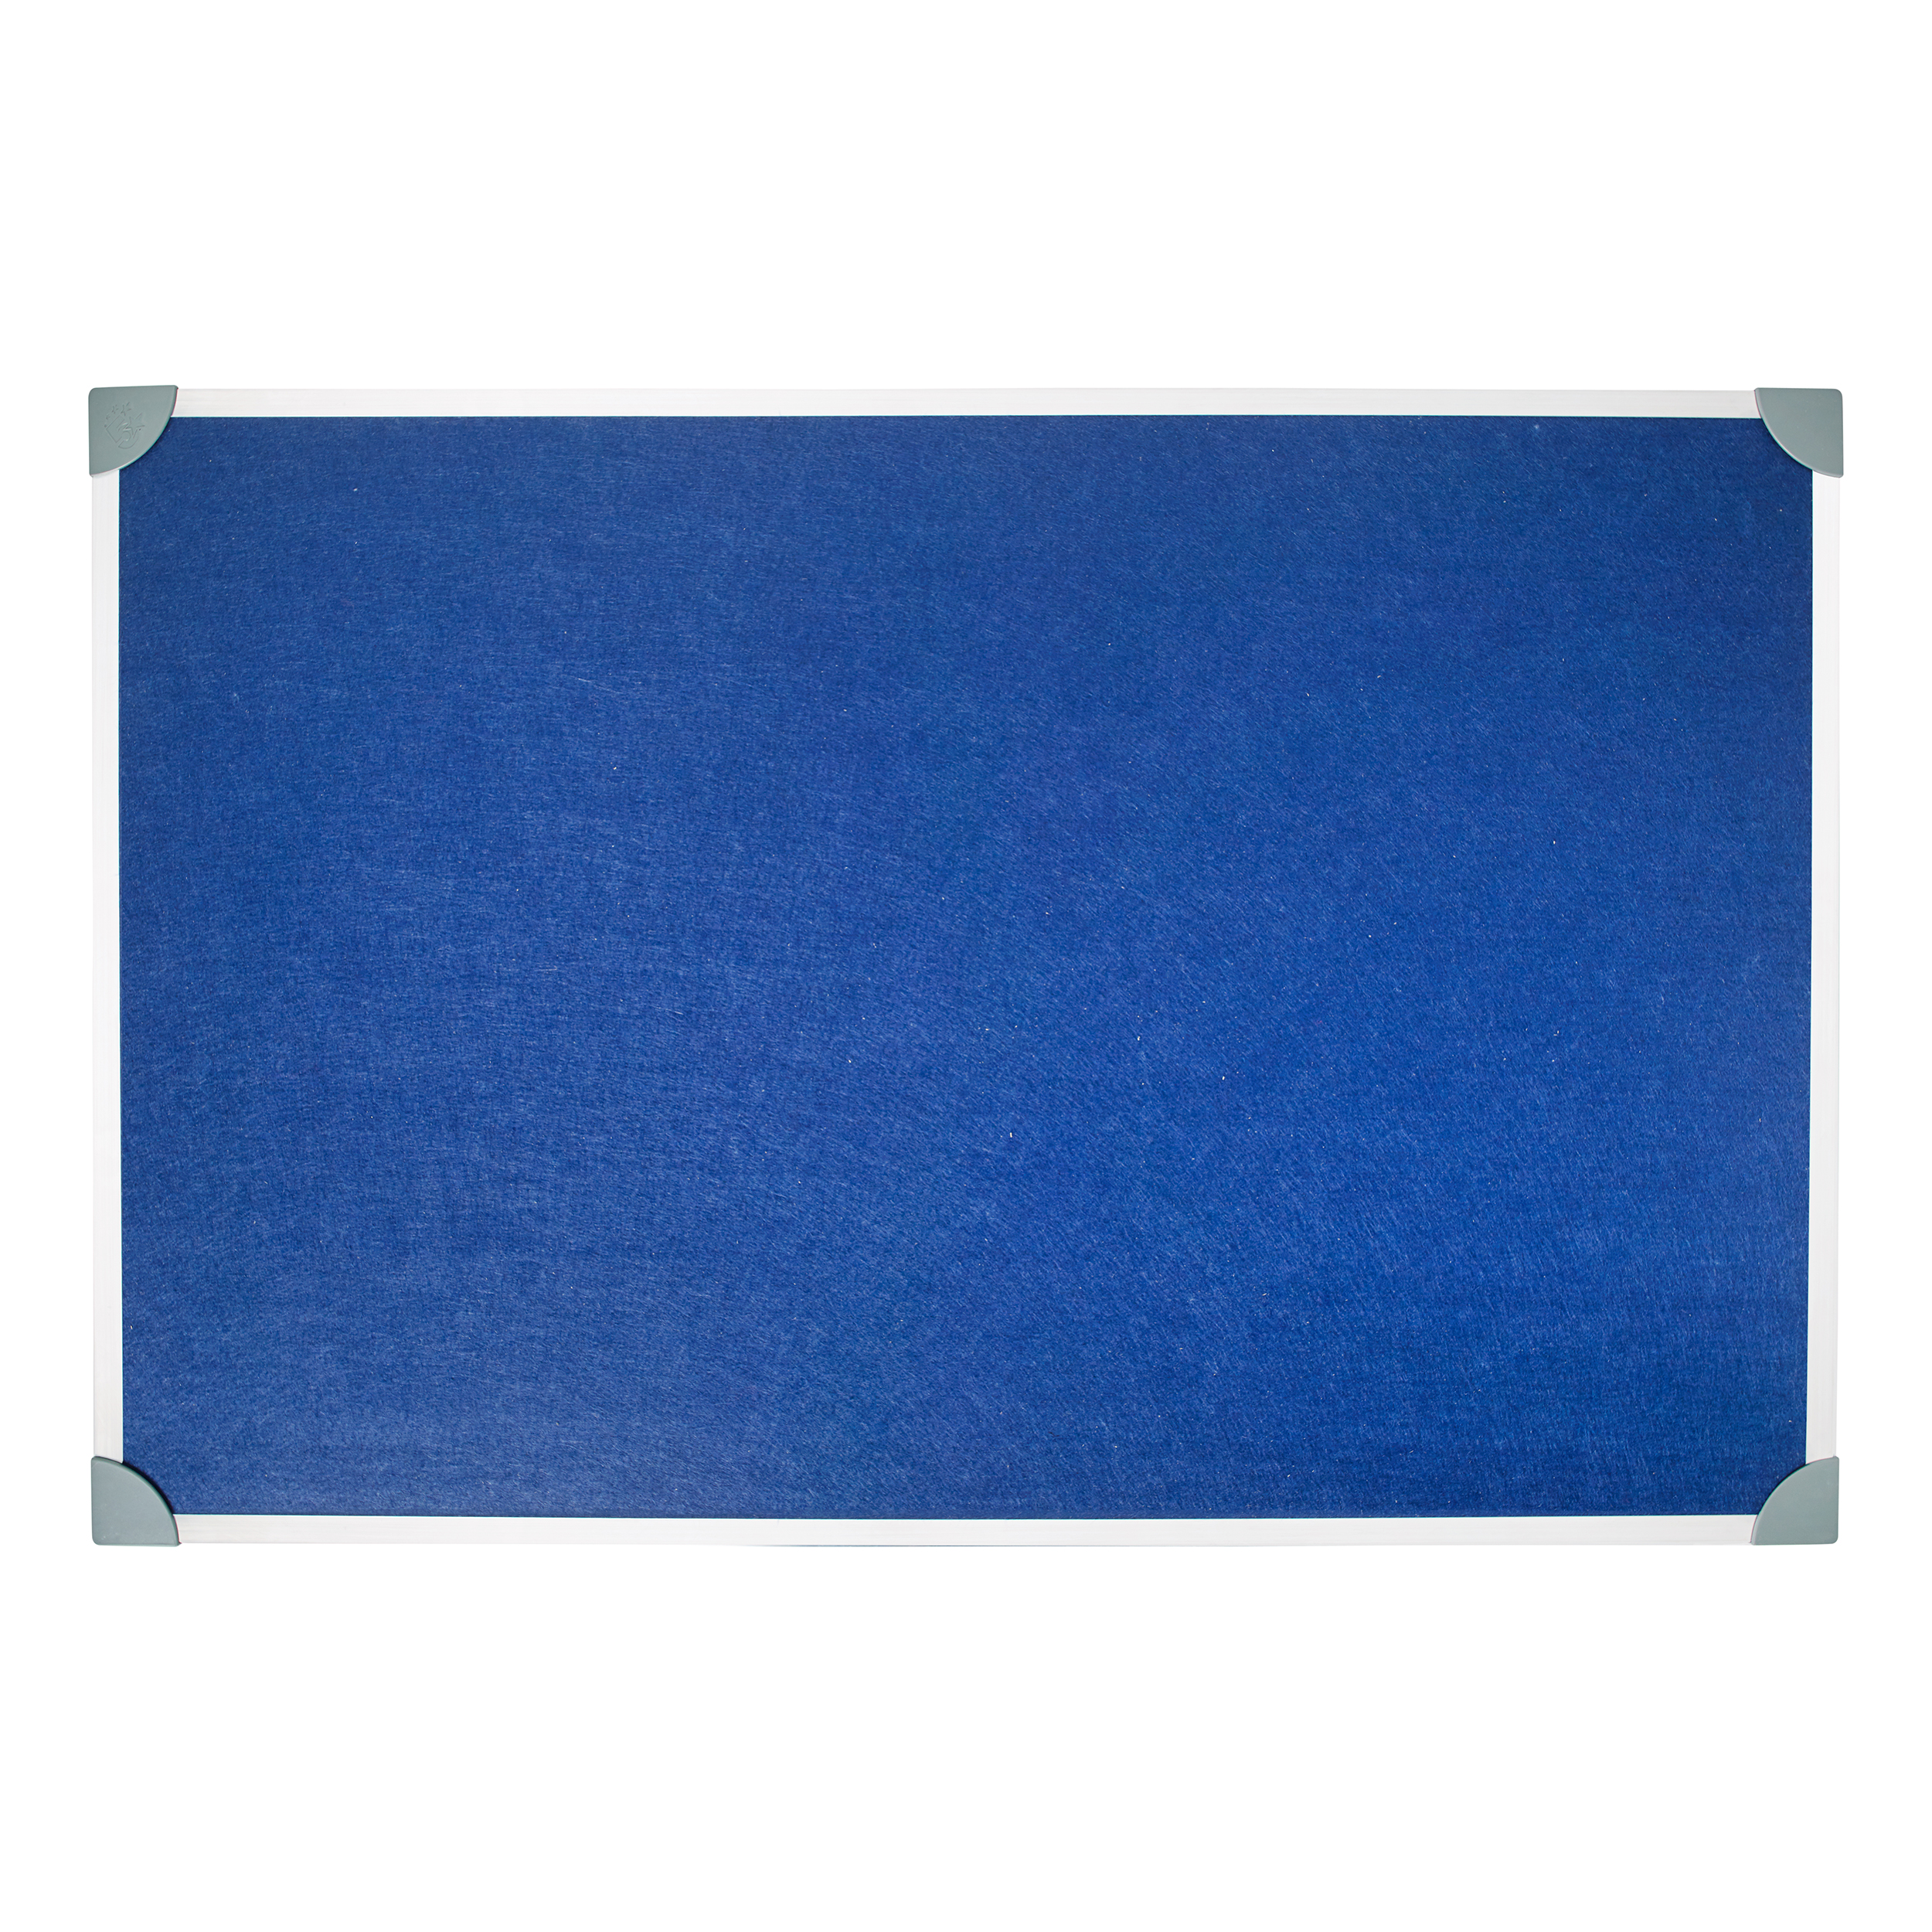 Felt 5 Star Office Felt Noticeboard with Fixings and Aluminium Trim W900xH600mm Blue